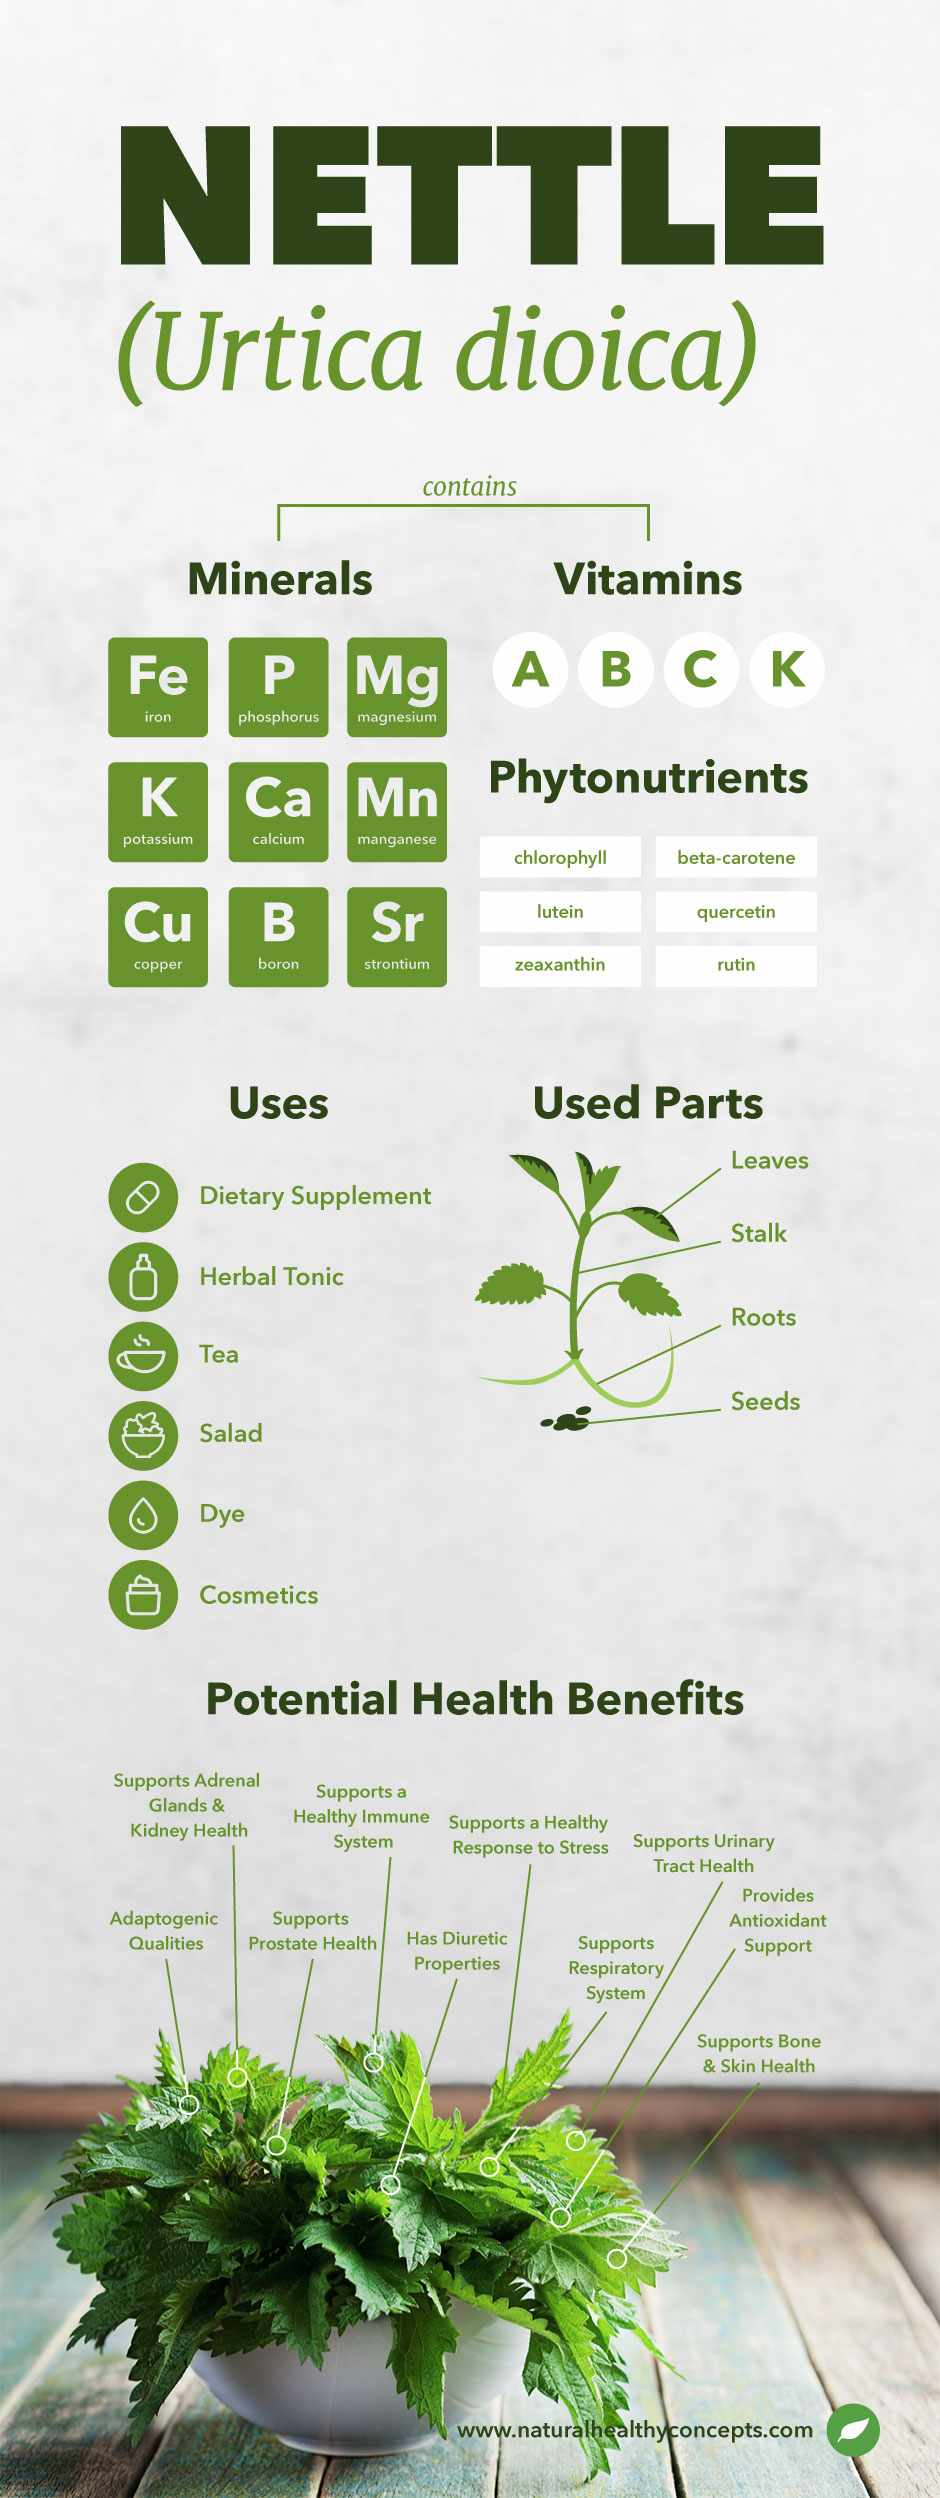 nettle leaf infographic